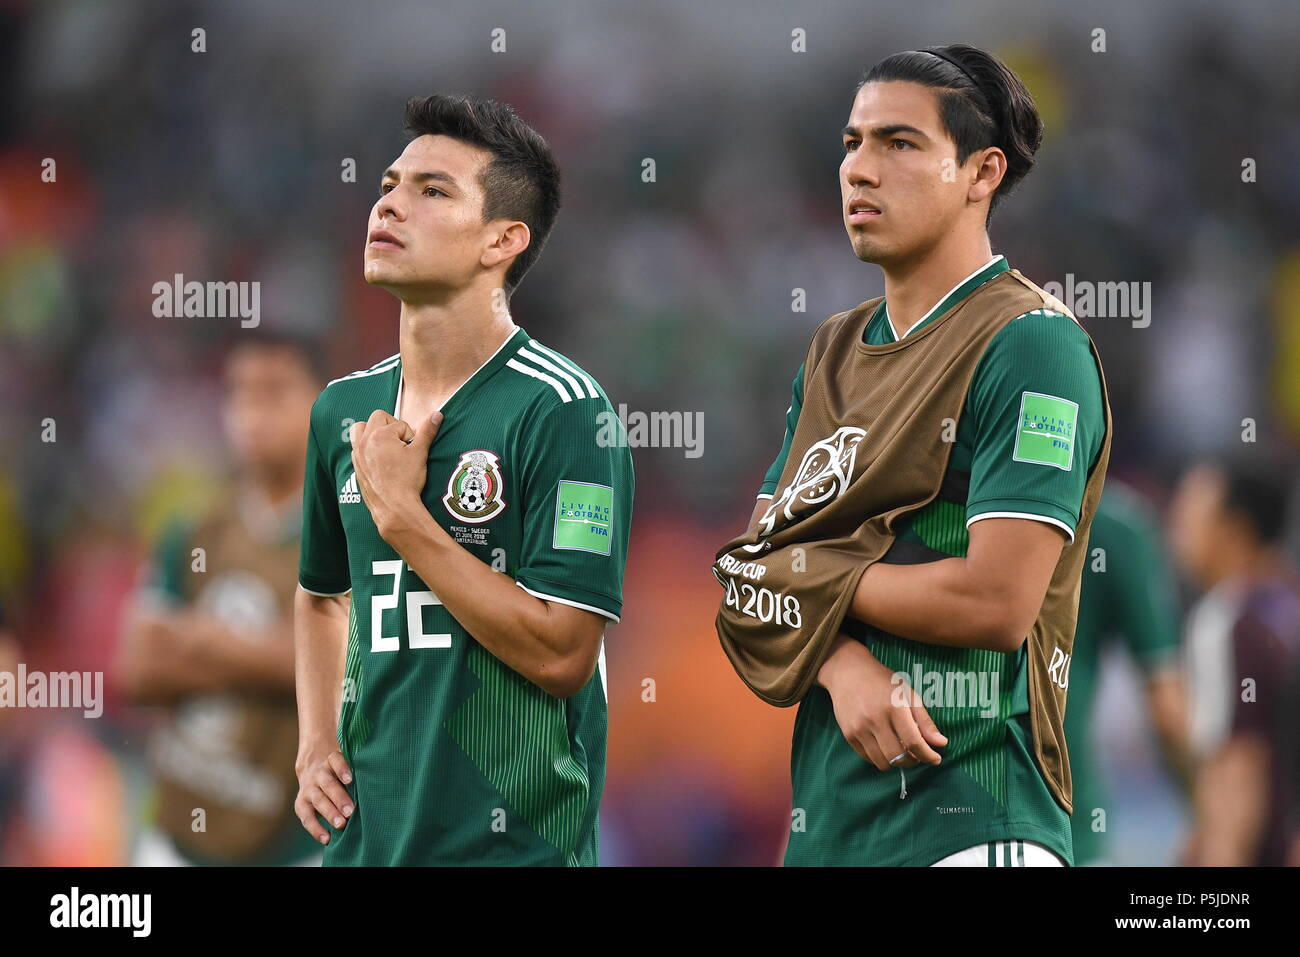 Yekaterinburg, Russia. 27th June, 2018. Mexico's Hirving Lozano (L) and Erick Gutierrez after losing the 2018 FIFA World Cup First Stage Group F football match against Sweden at Ekaterinburg Arena Stadium. Donat Sorokin/TASS Credit: ITAR-TASS News Agency/Alamy Live News - Stock Image